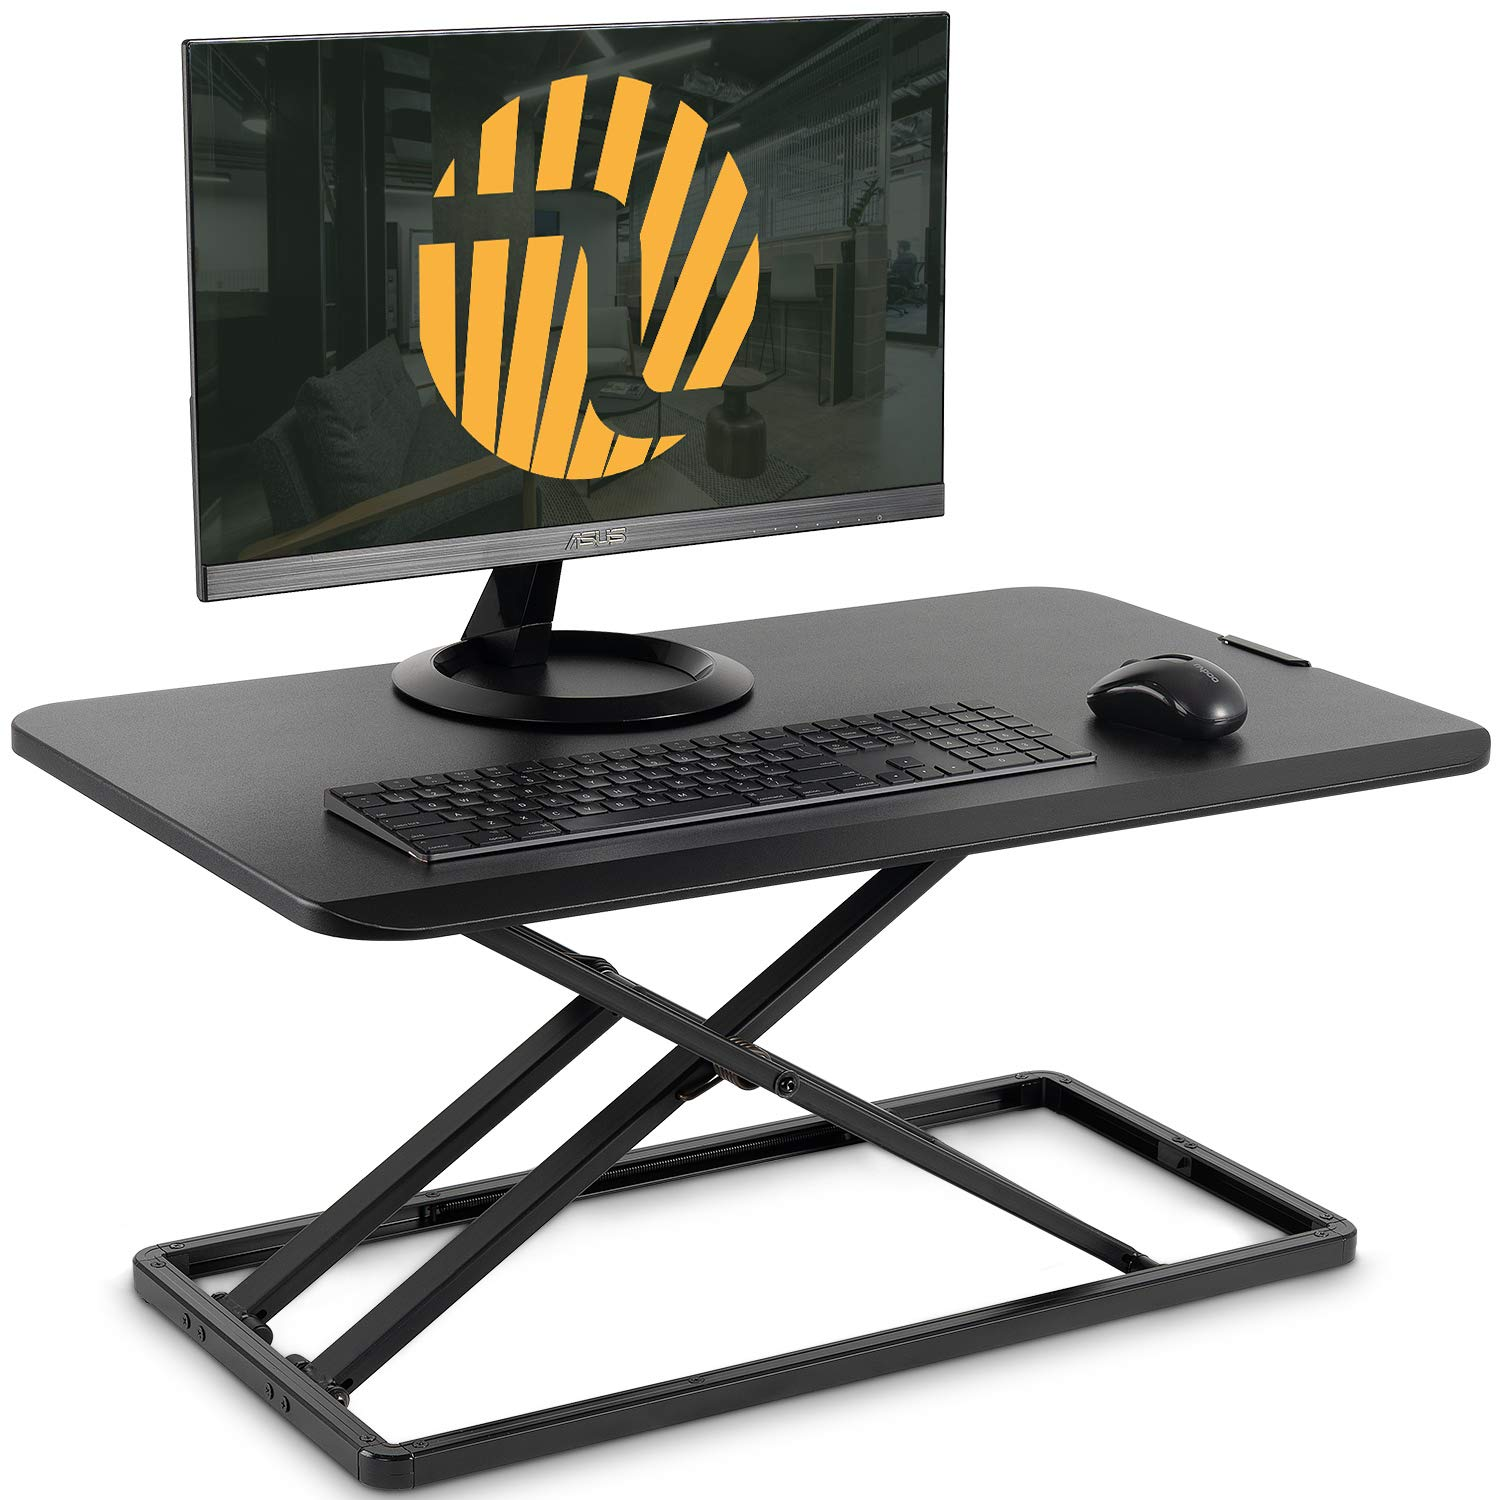 Standing Desk Converter with Height Adjustable - FEZIBO Ultra Slim Sit to Stand Desk Riser 29 inches Black, Lightweight Ergonomic Tabletop for Laptop by FEZIBO